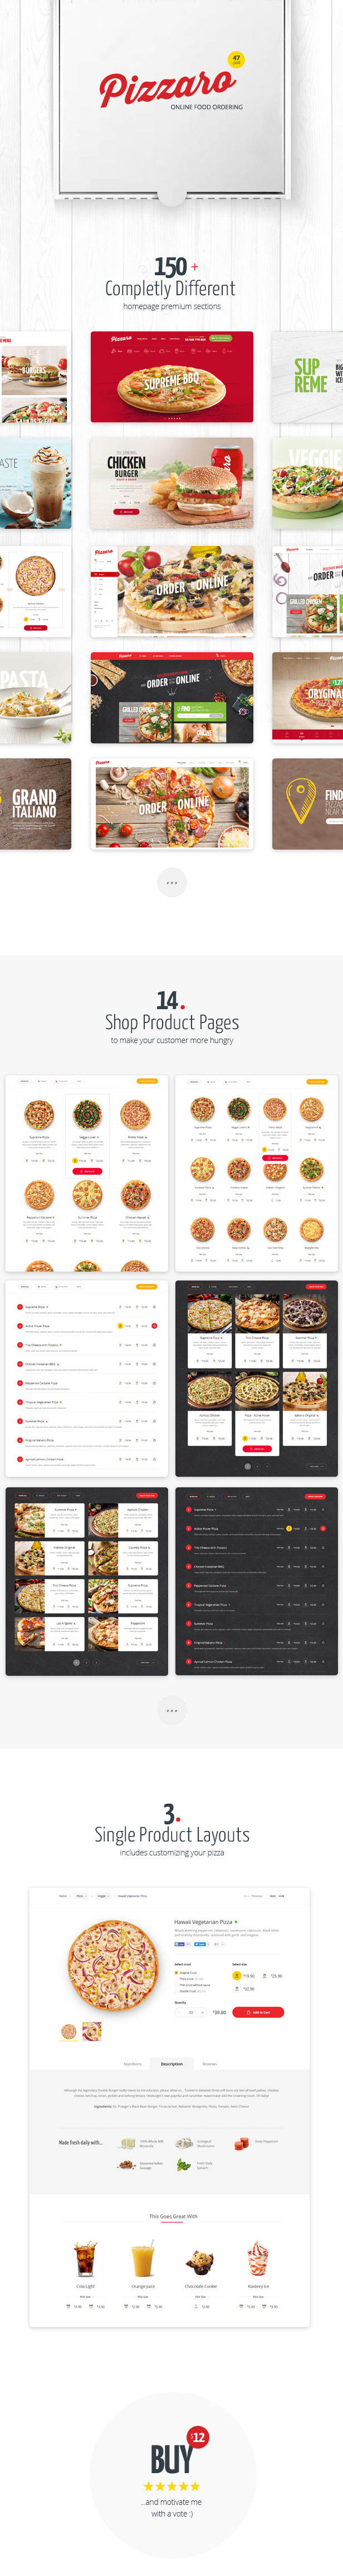 Pizzaro - Food Online Ordering eCommerce